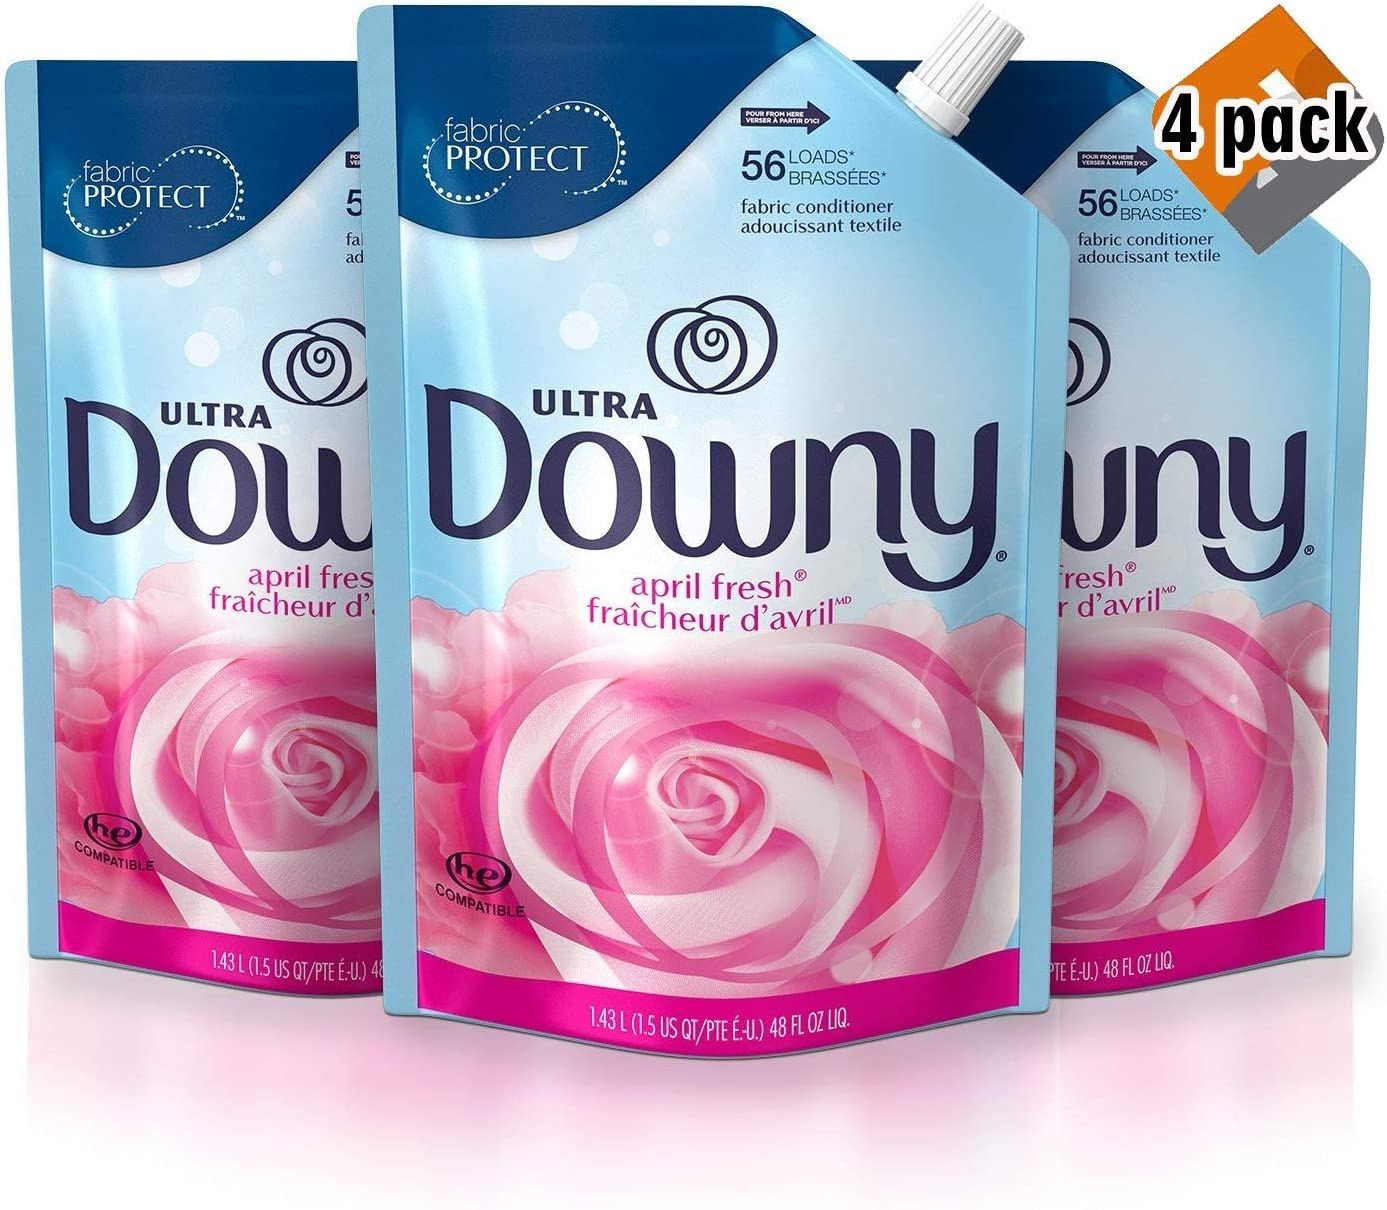 Downy Ultra April Fresh Liquid Fabric Conditioner Smart Pouch, Fabric Softener - 48 Oz. Pouches, 12 Pack